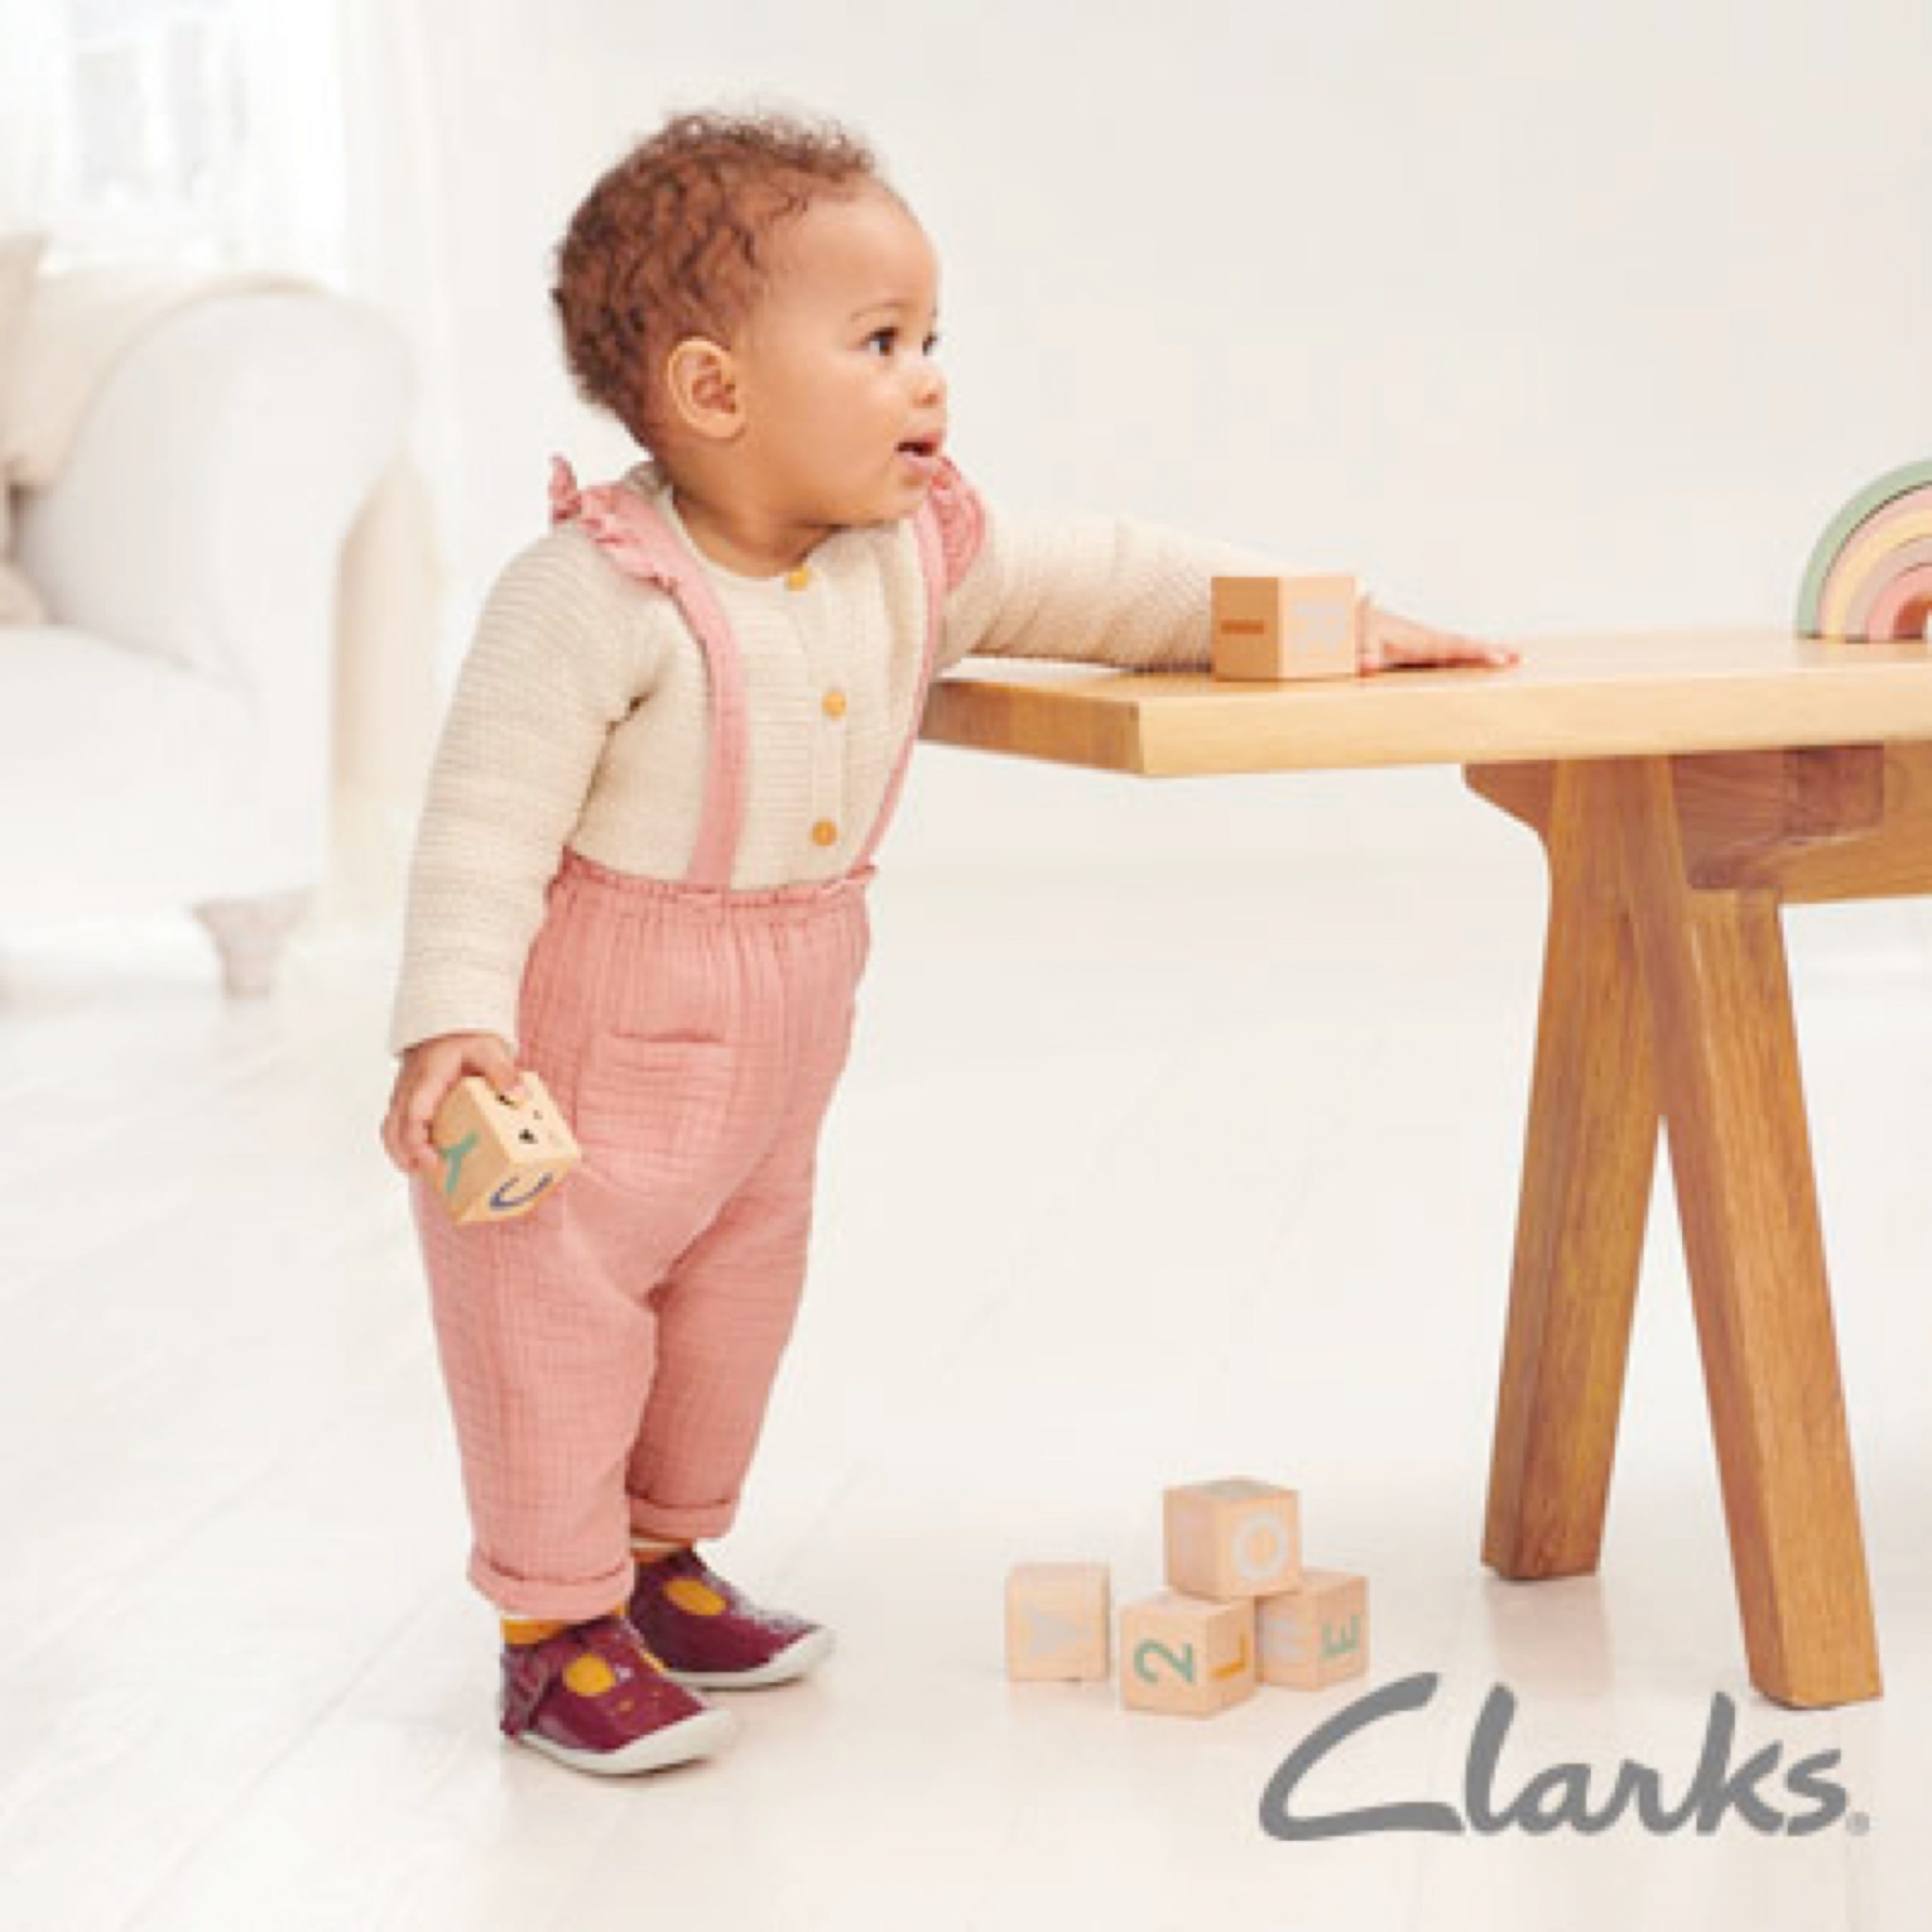 Clarks Outlet Footwear Shop | ICON